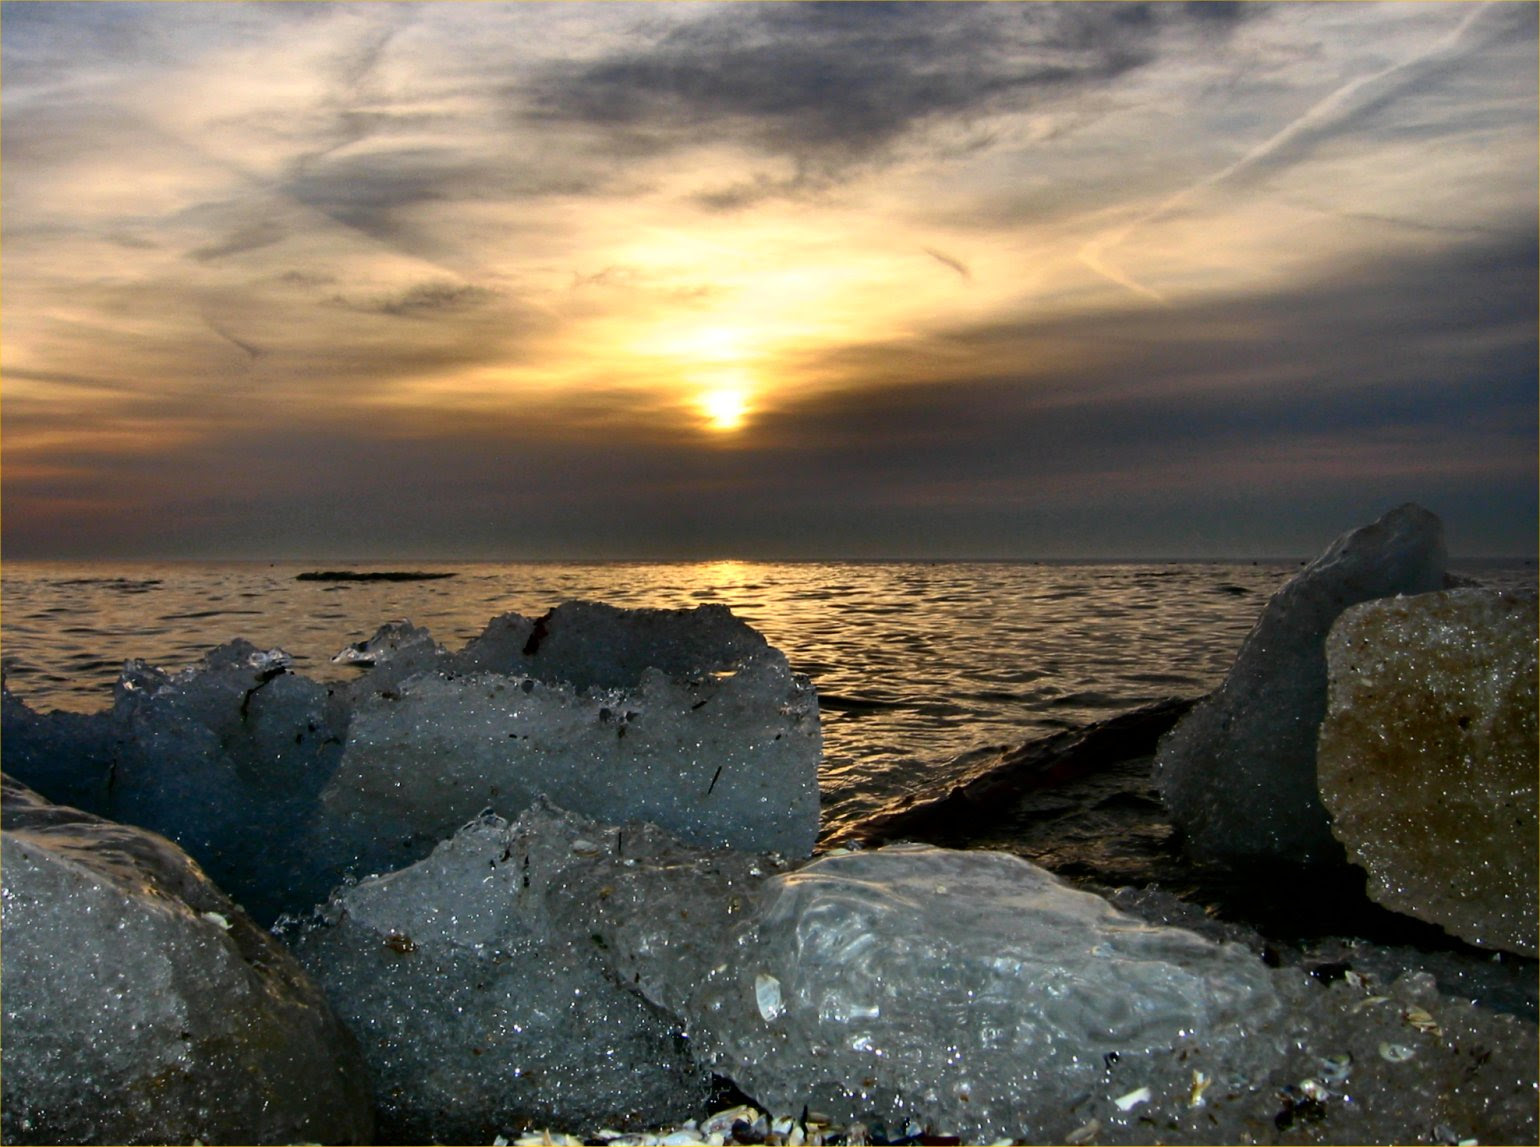 Natural Lake Michigan Ice Sculptures at Sunrise